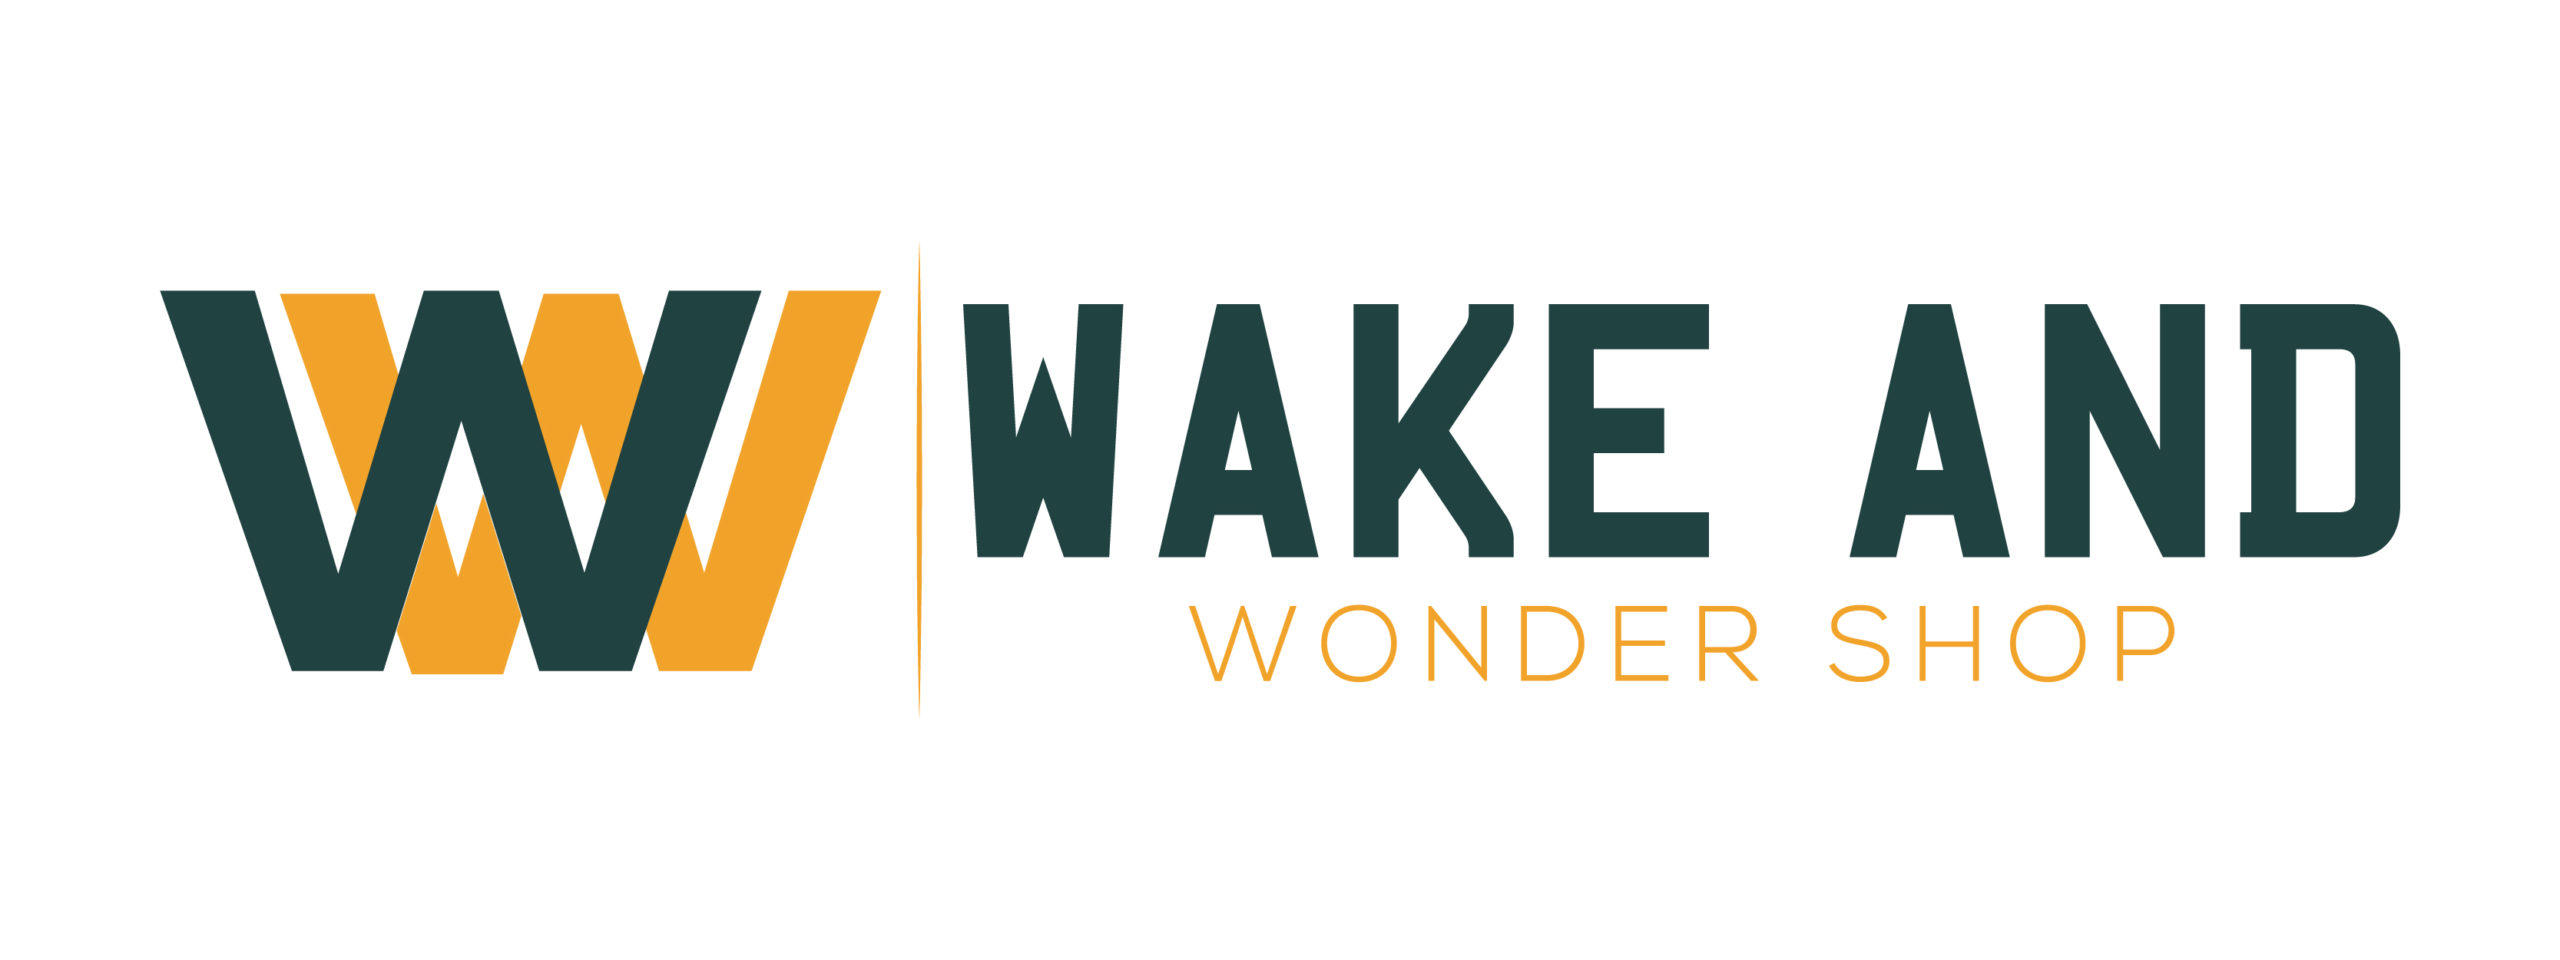 wake and wonder shop